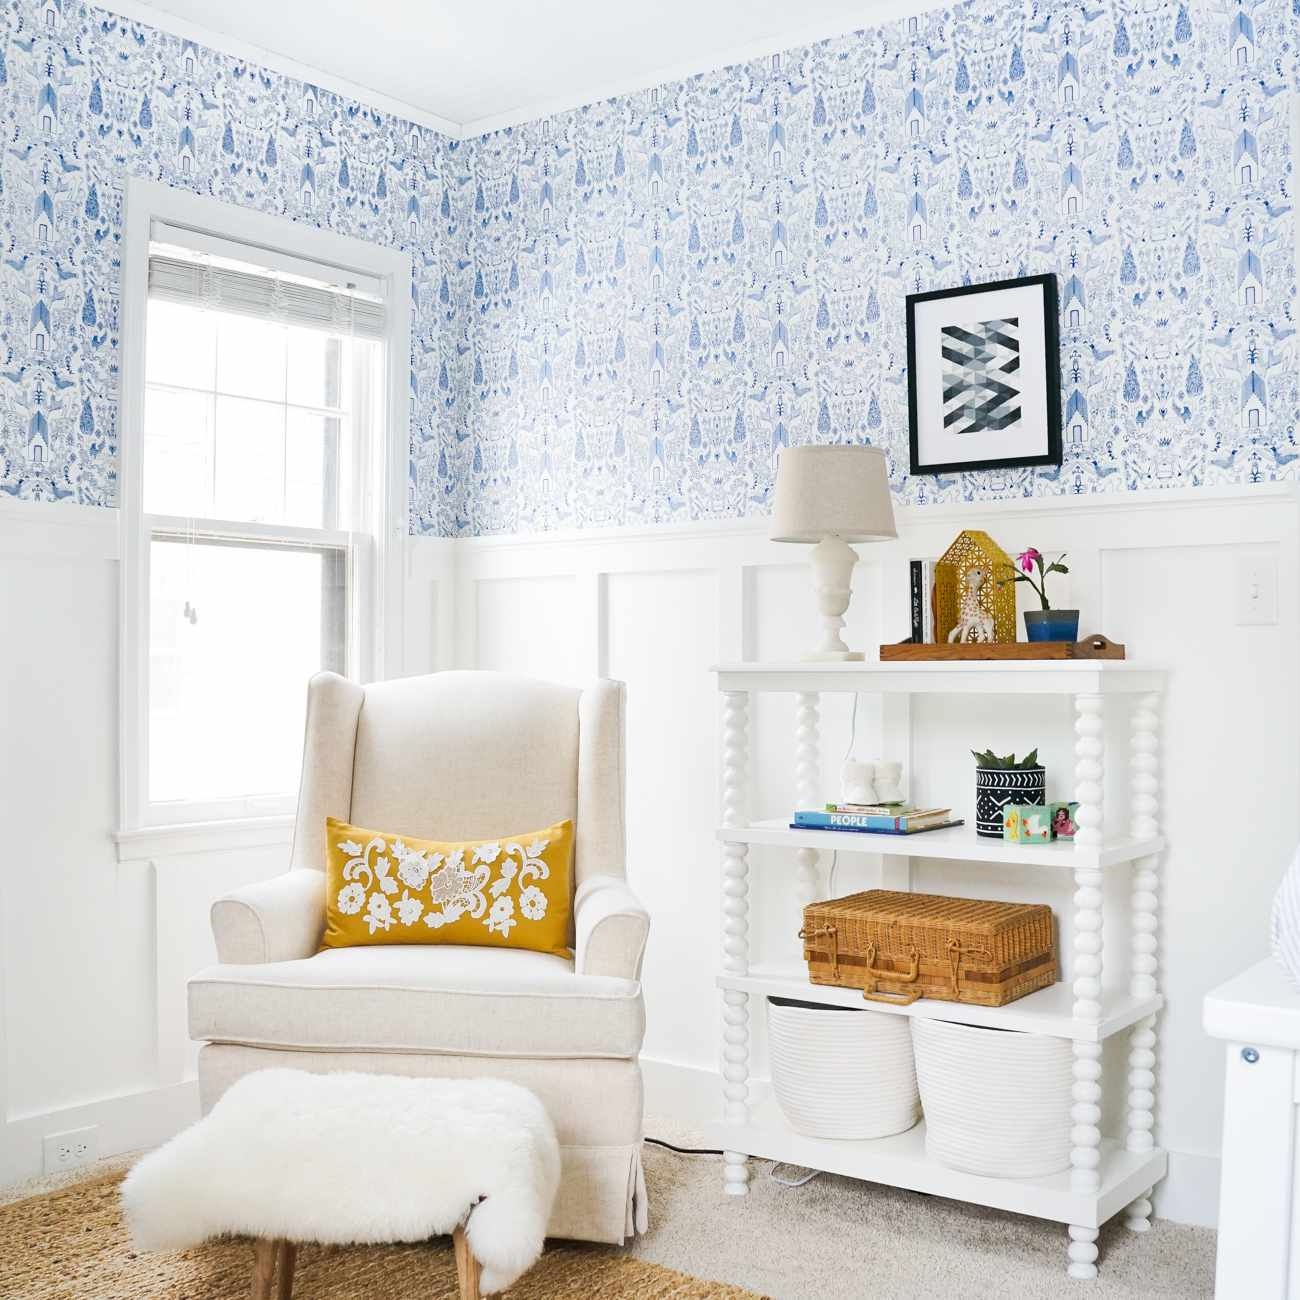 Blue and white nursery with wallpaper print and wood paneling